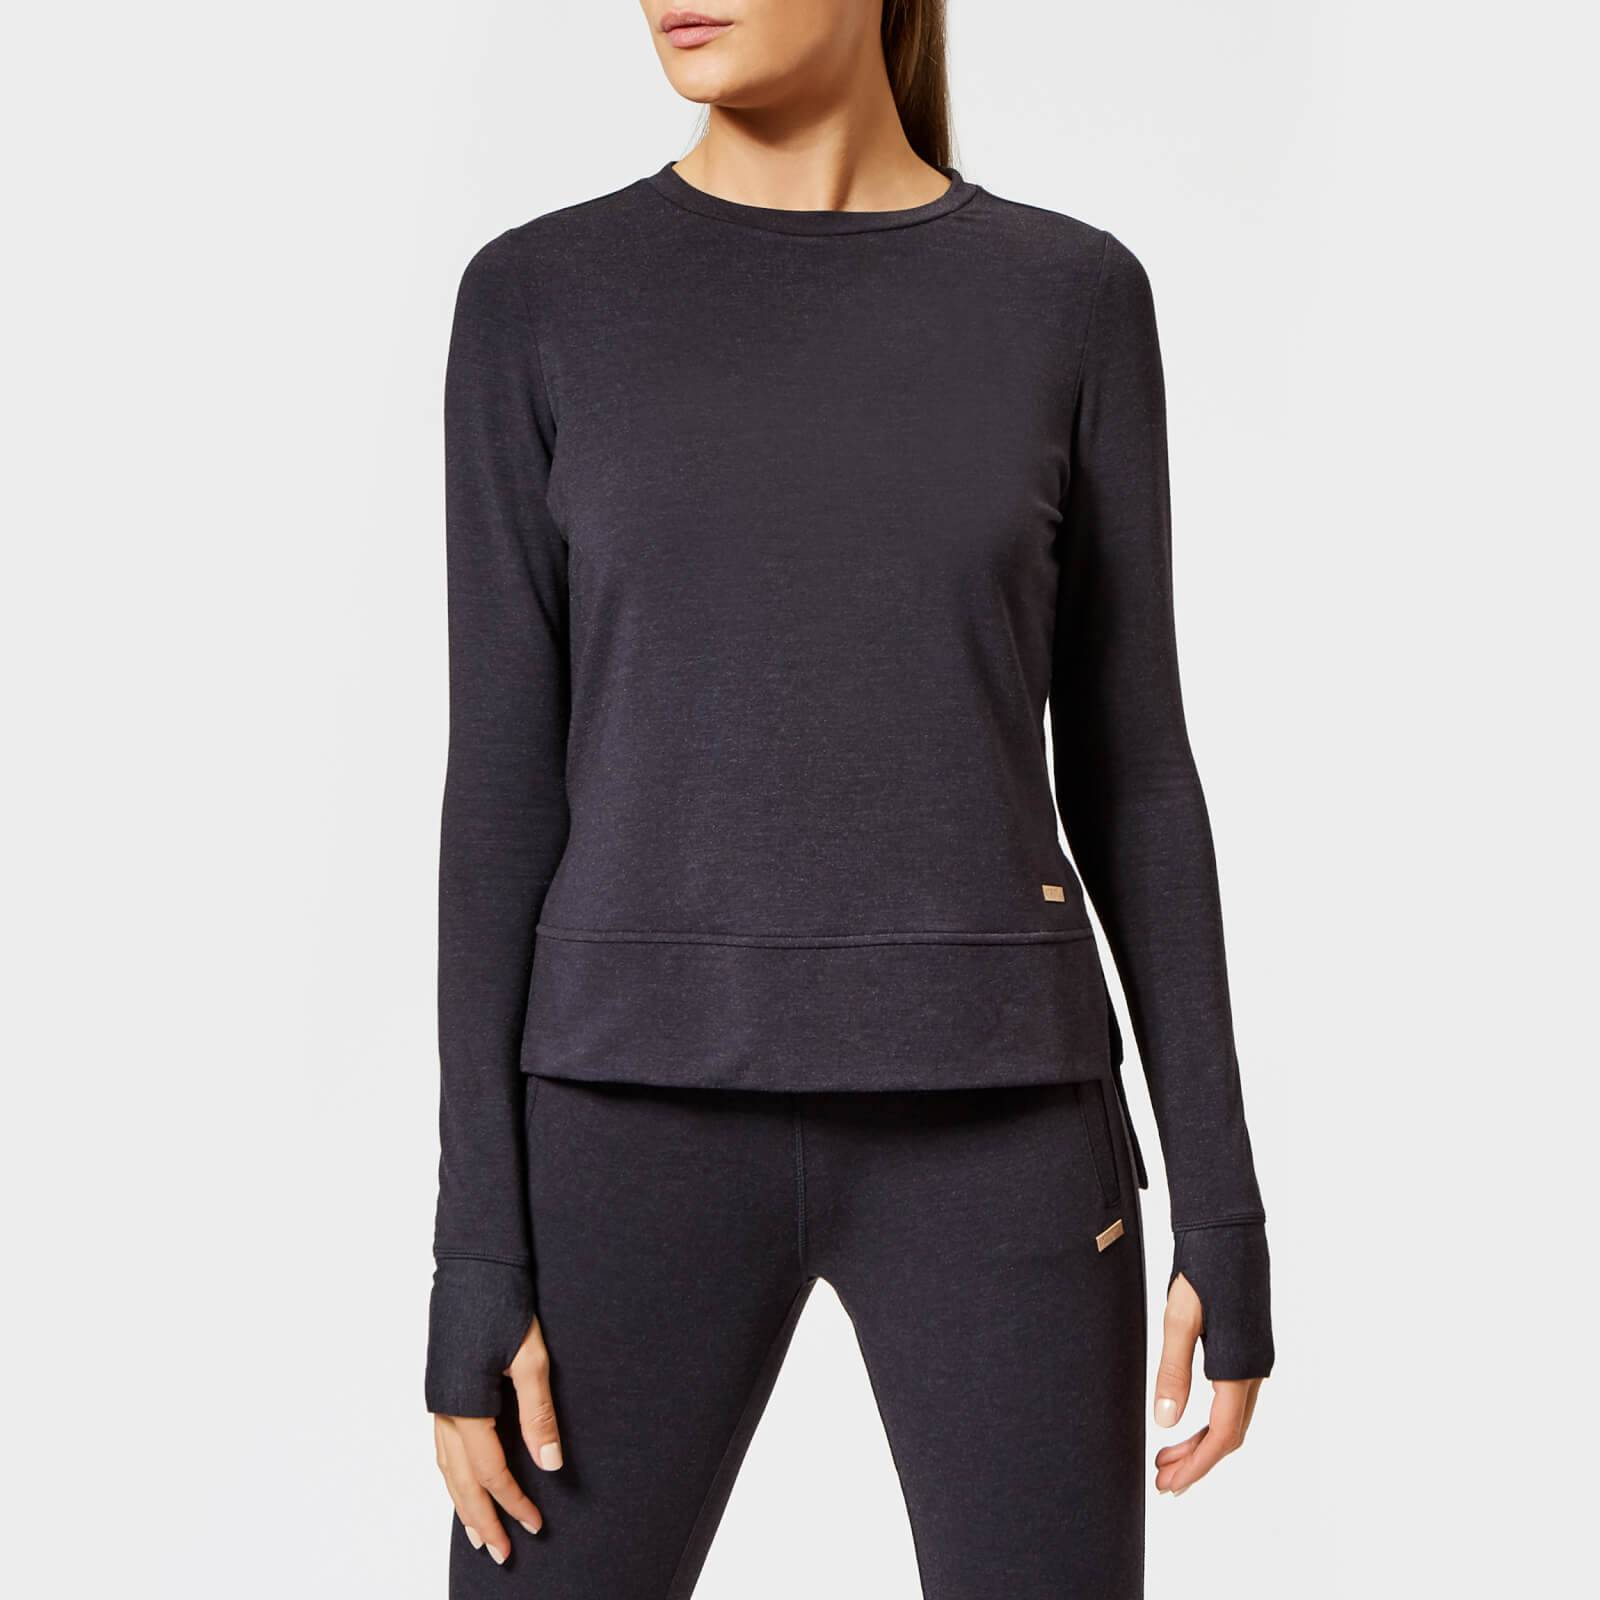 Superdry Sport Women's Active Studio Luxe Crew Neck Sweatshirt - Black Marl - UK 14 - Black